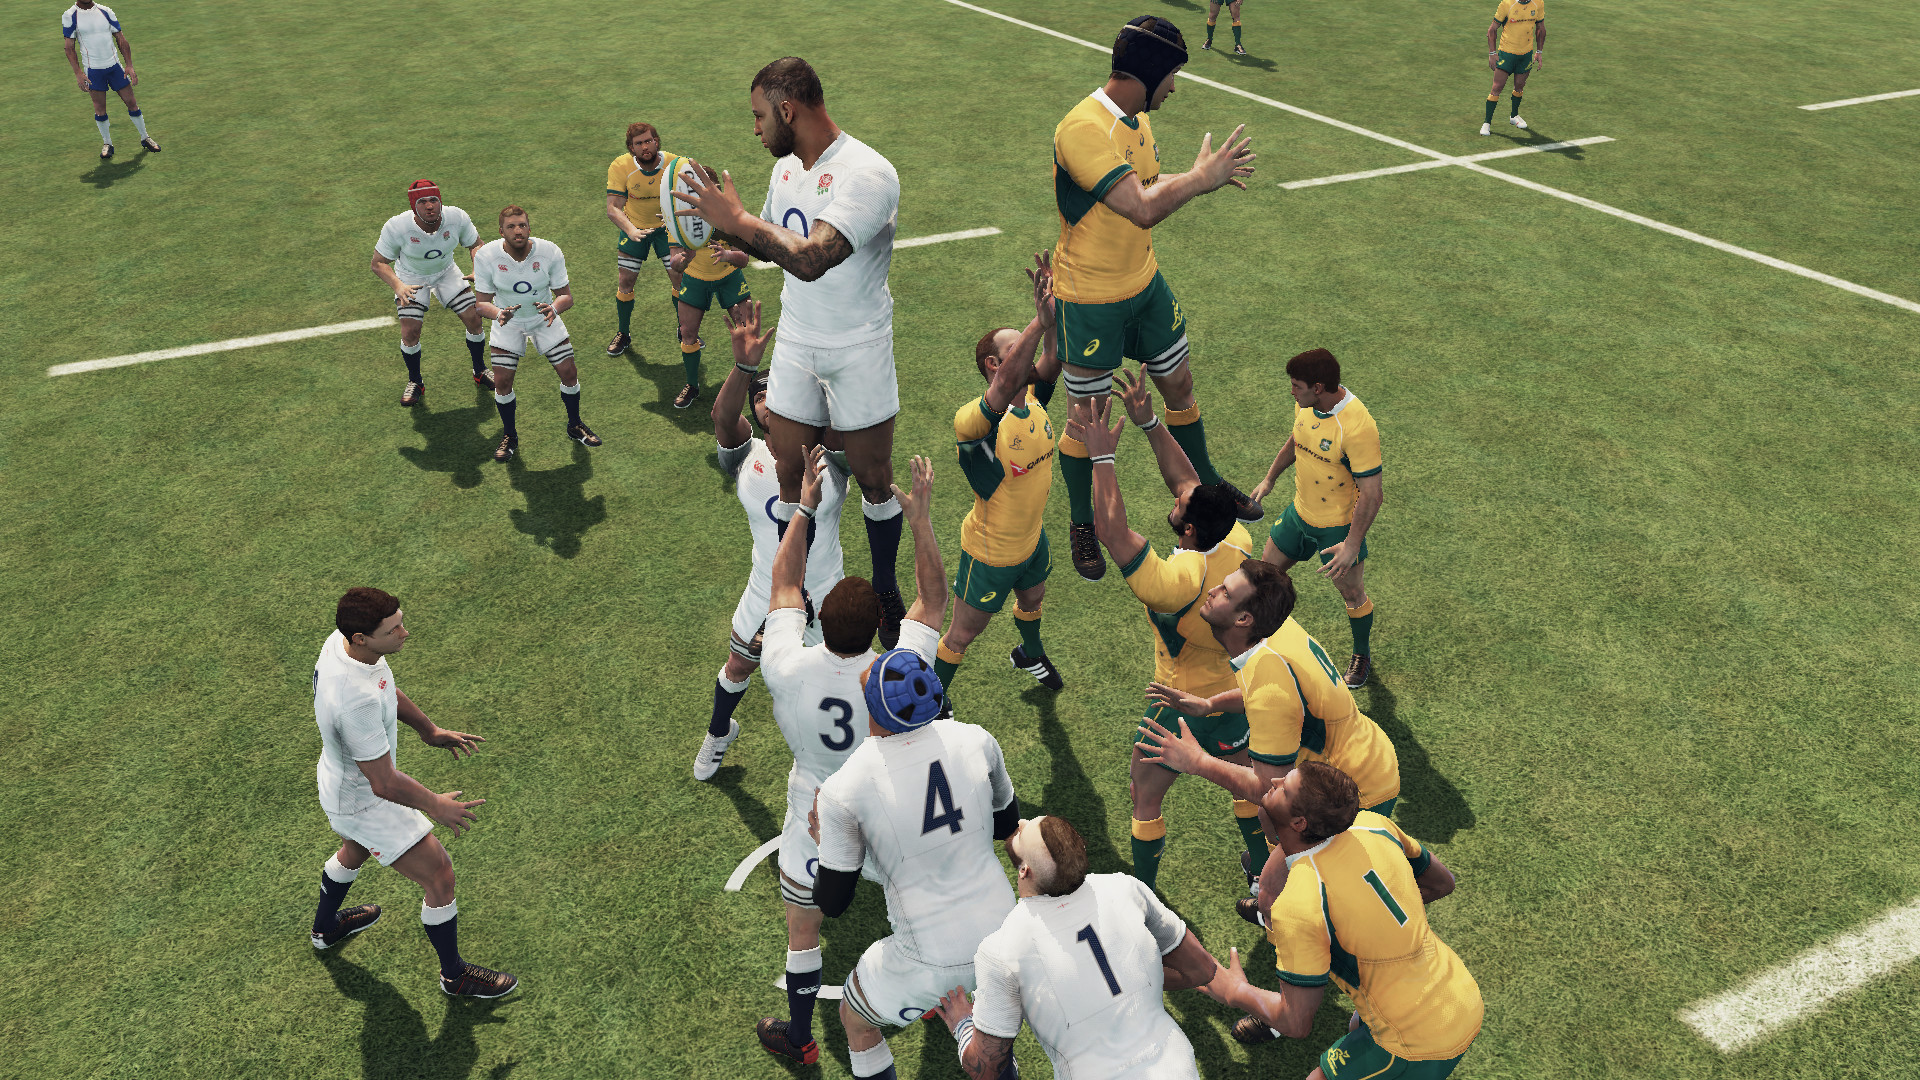 Rugby Challenge 3 Features